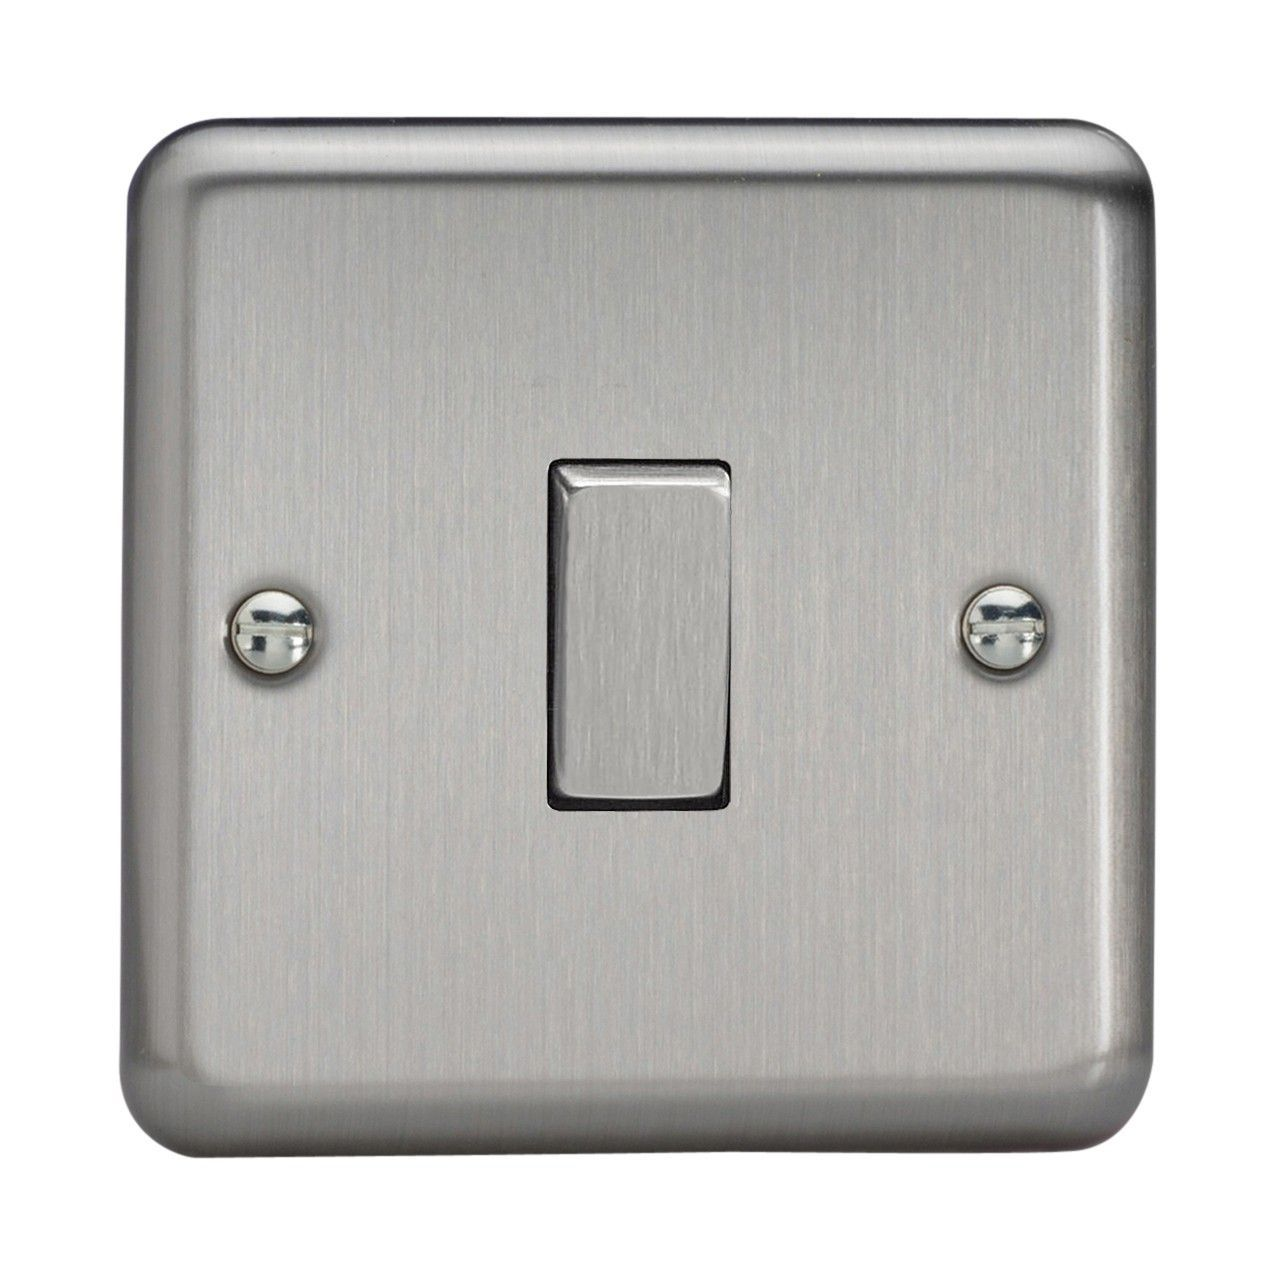 Rocker Light Switch >> Varilight Xs7d Classic Matt Chrome 1 Gang 10a Intermediate Rocker Light Switch